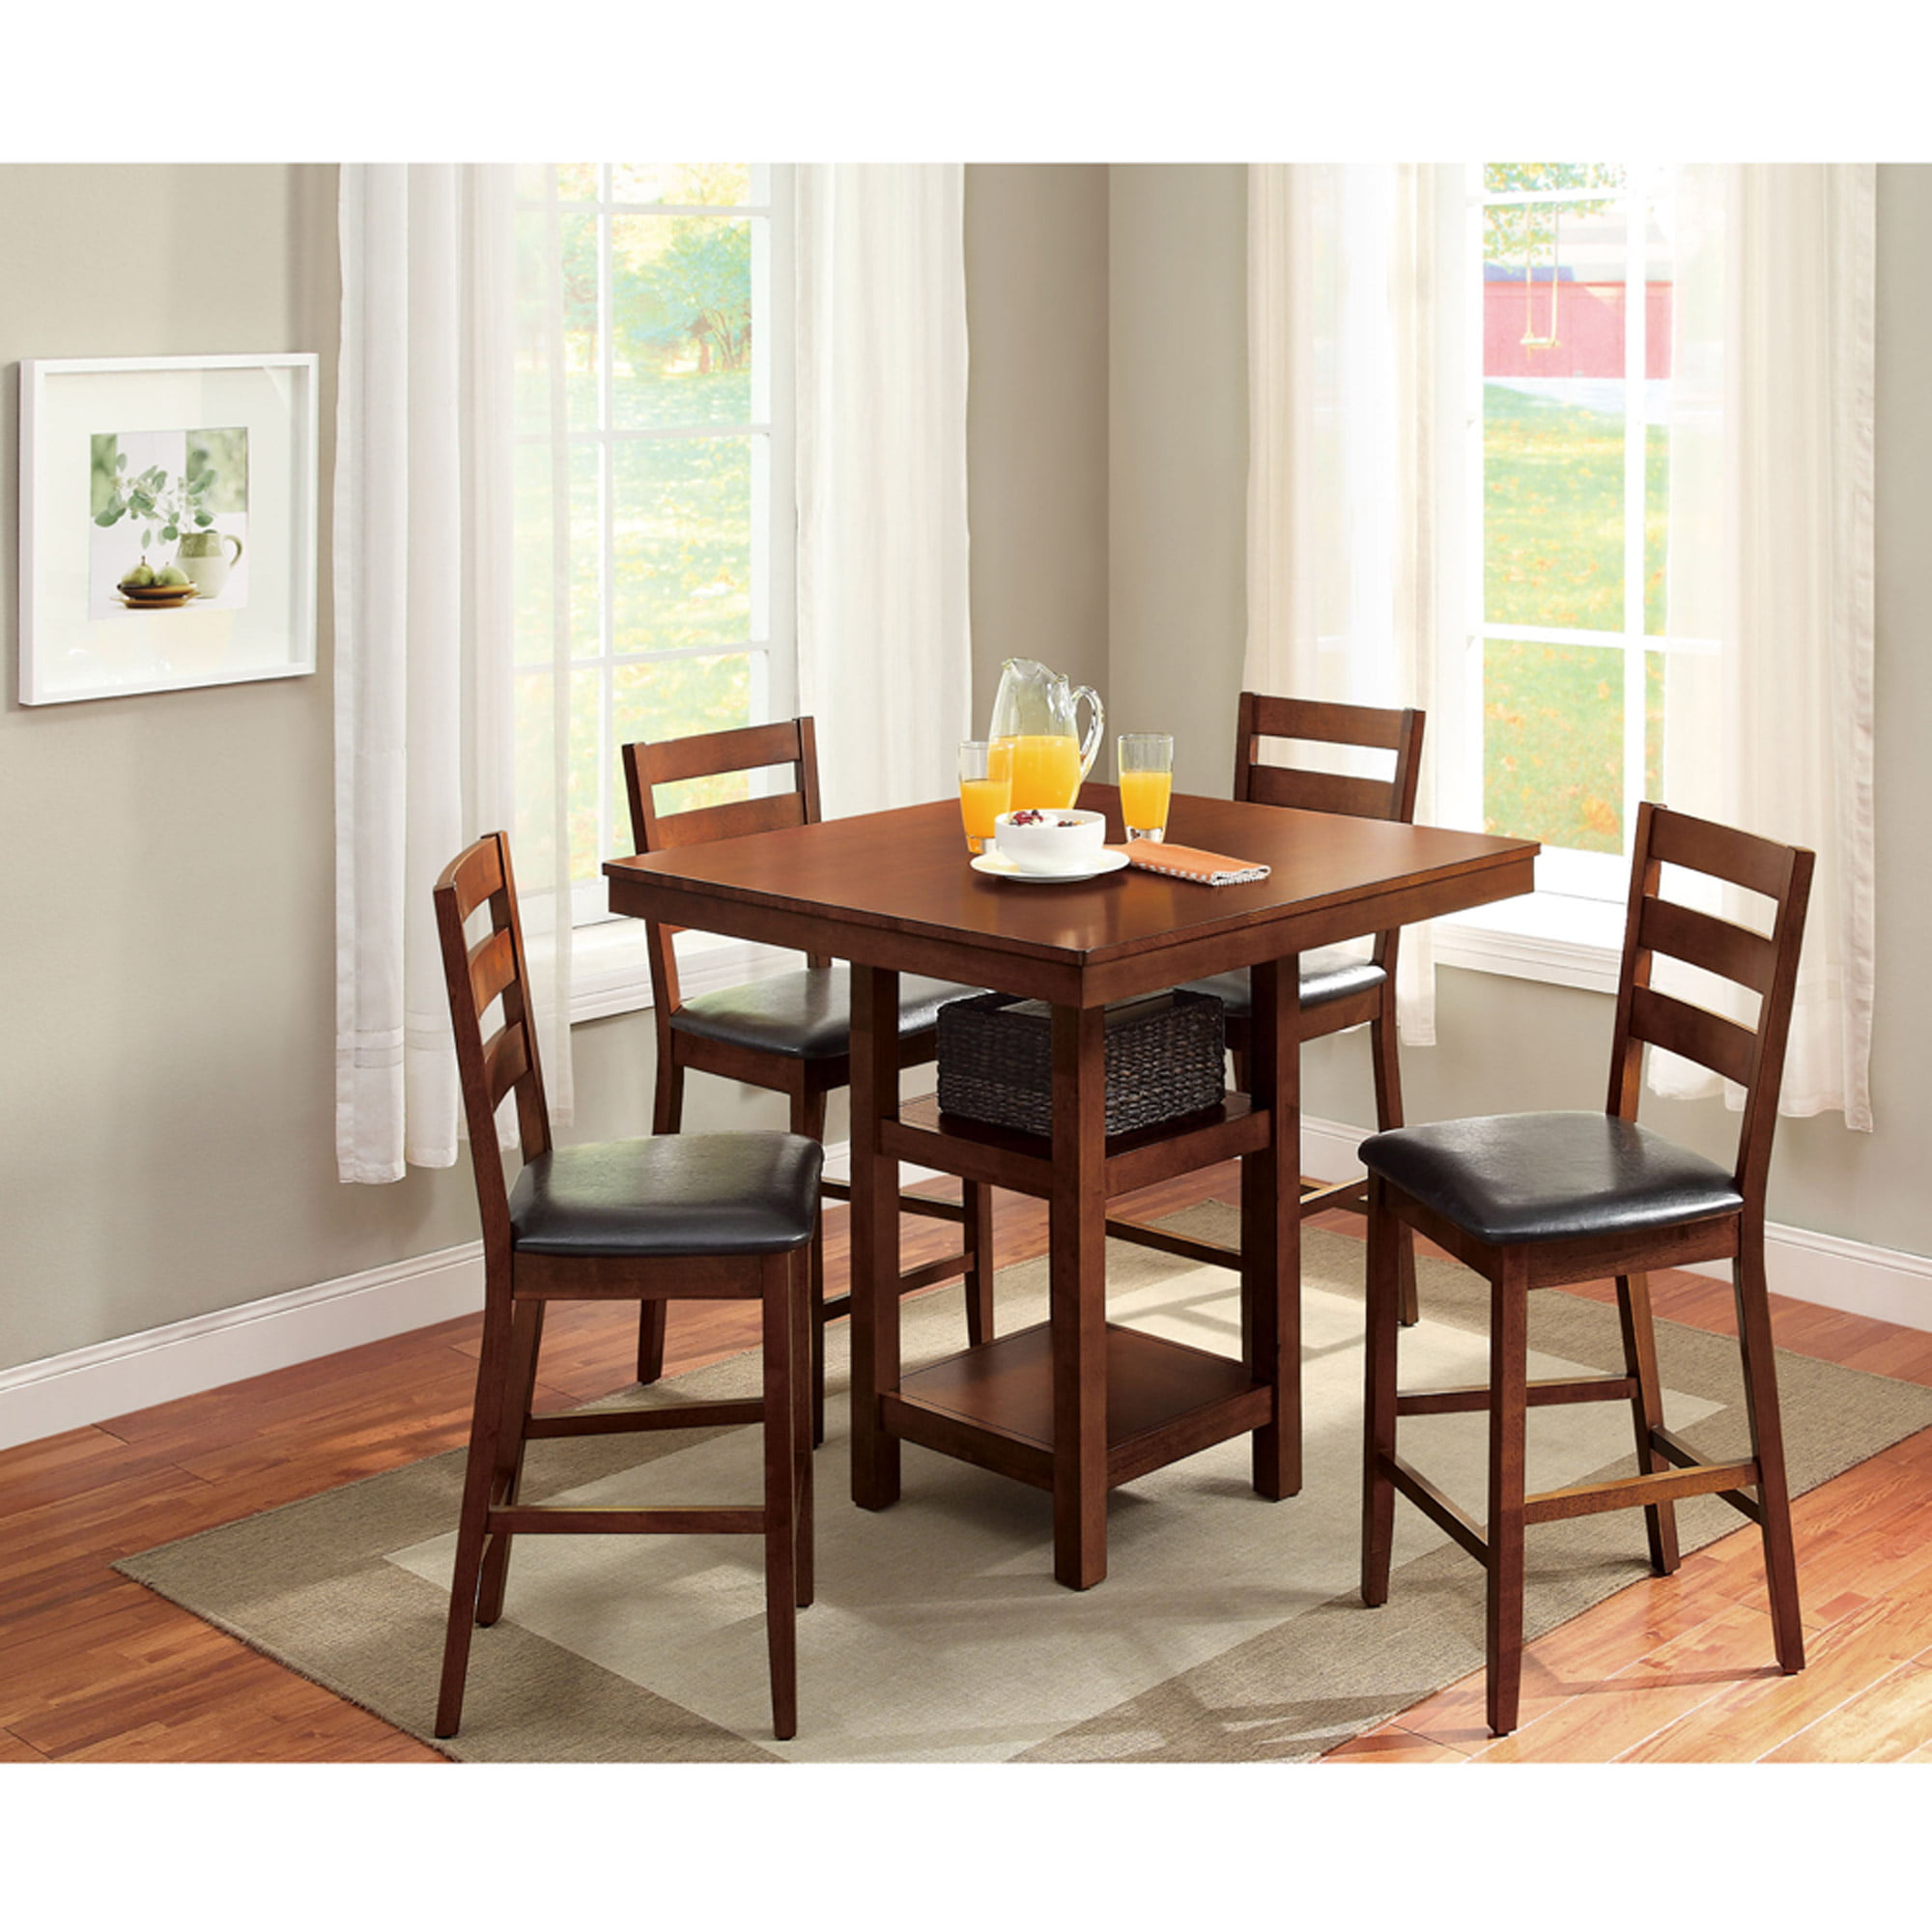 kitchen dining furniture walmartcom - Table And Chair Sets Kitchen